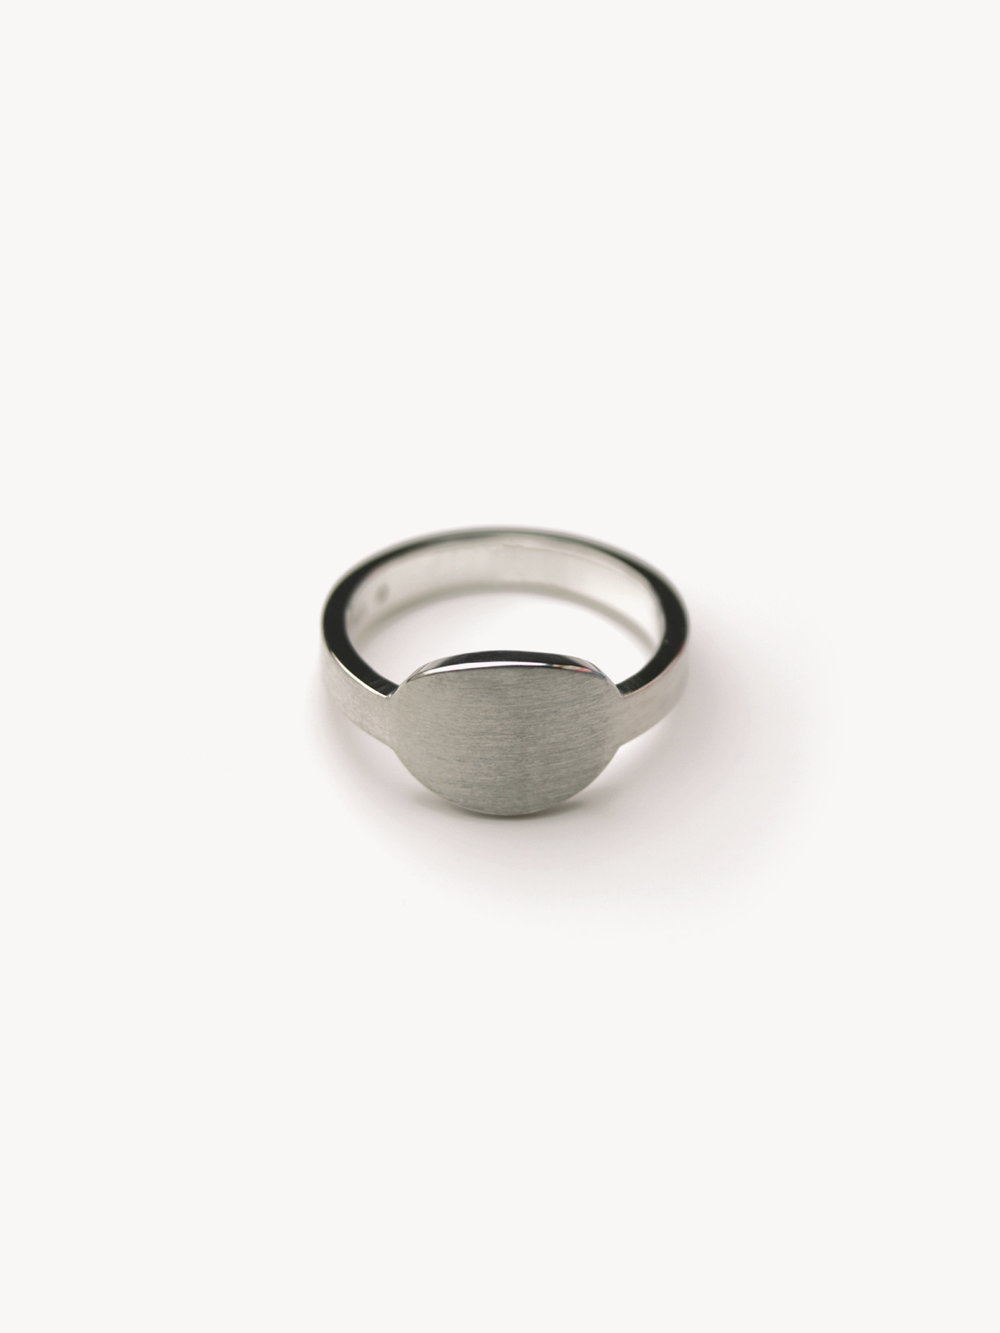 Siegelring, rund mittel in 925 Silber/ Signet ring, round medium in sterling silver